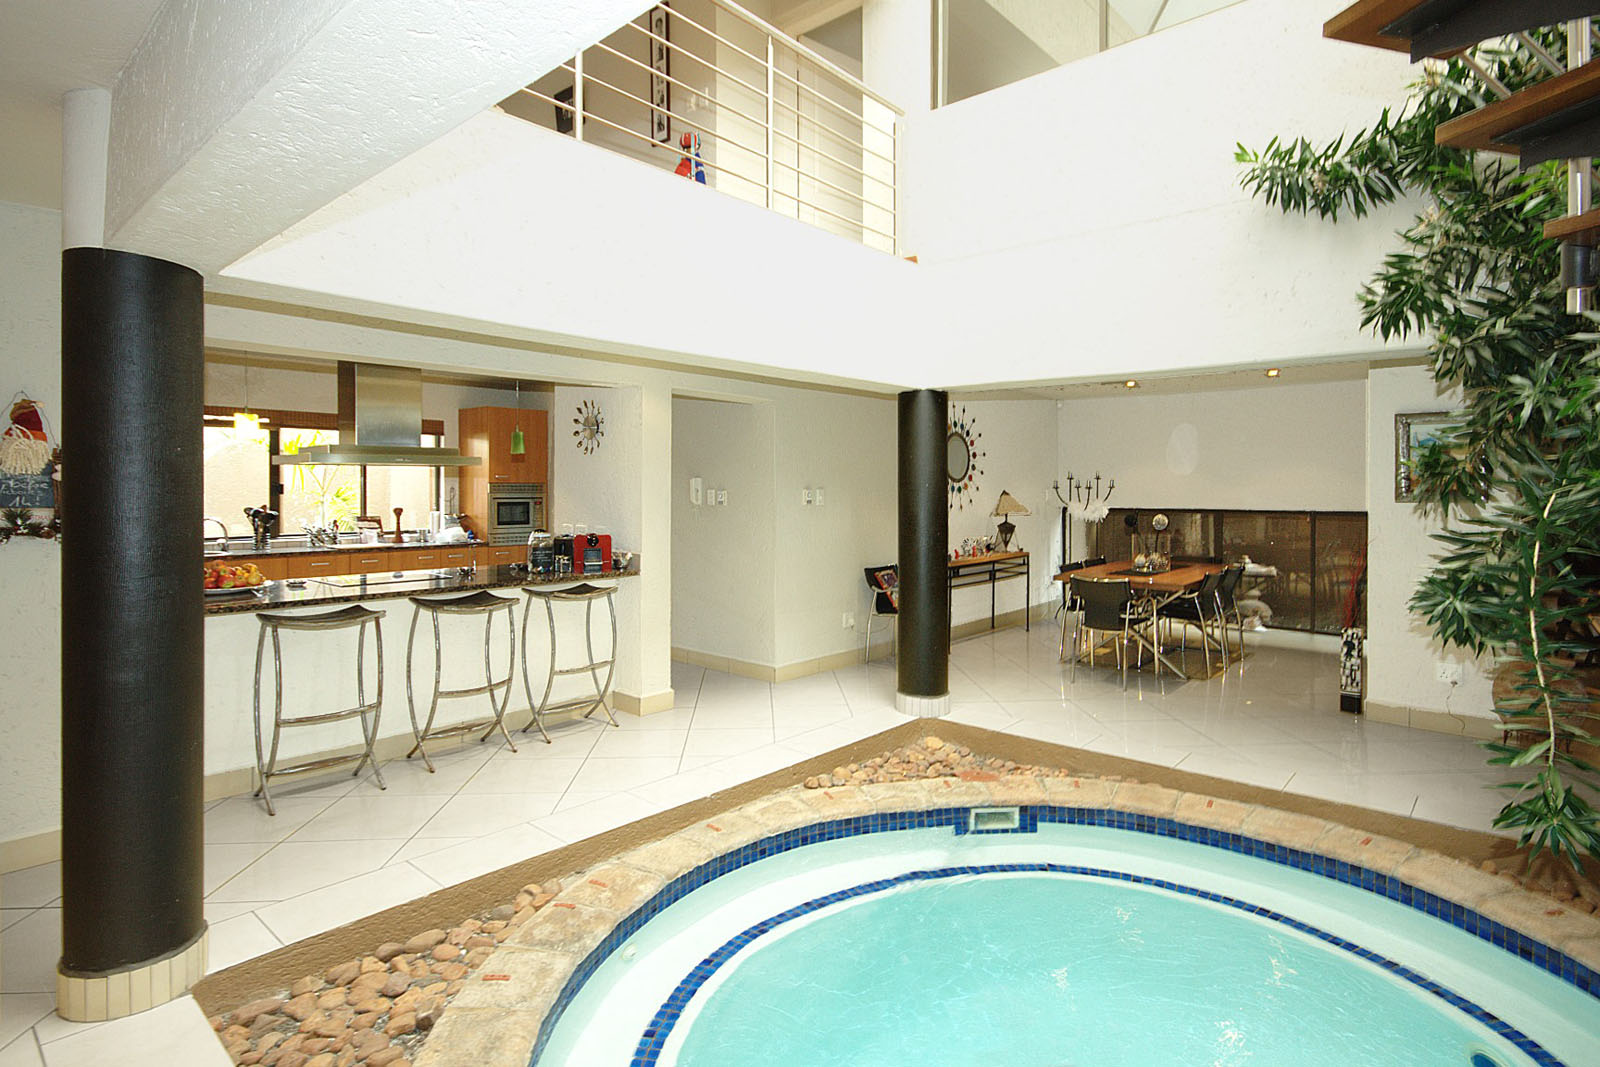 Pool,kitchen & dinning room